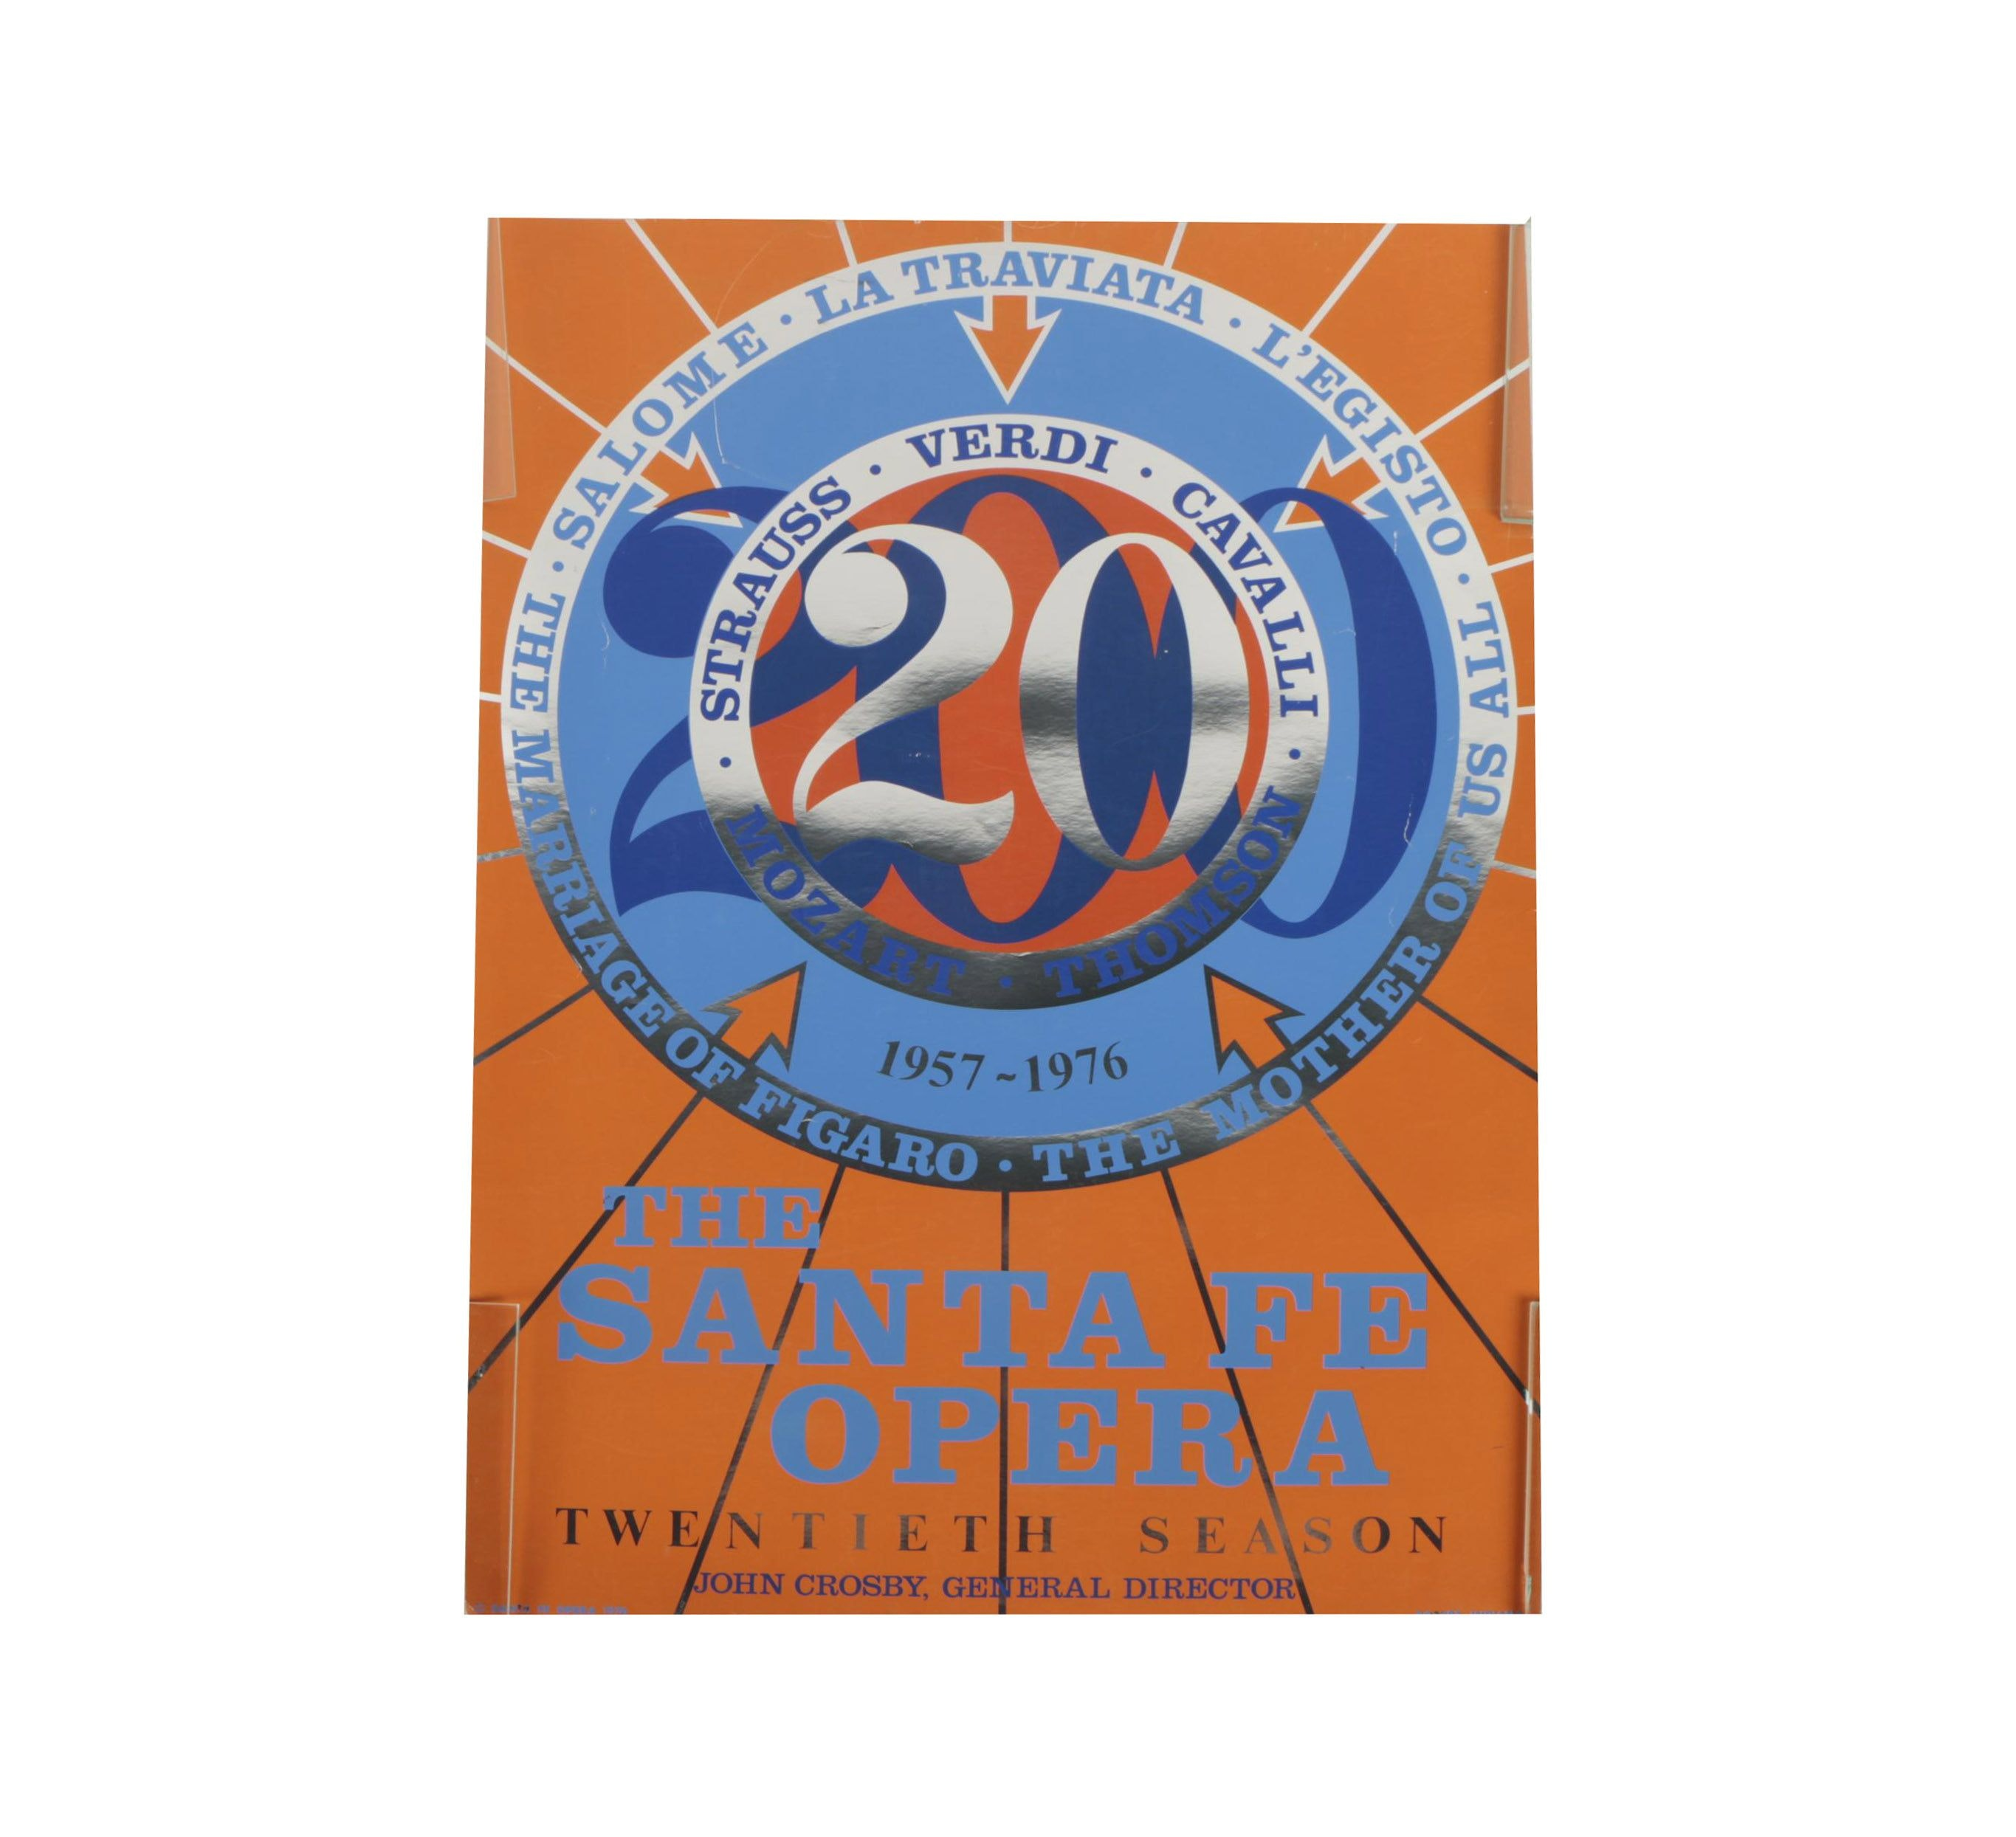 Vintage Serigraph Poster Designed by Robert Indiana for the Santa Fe Opera